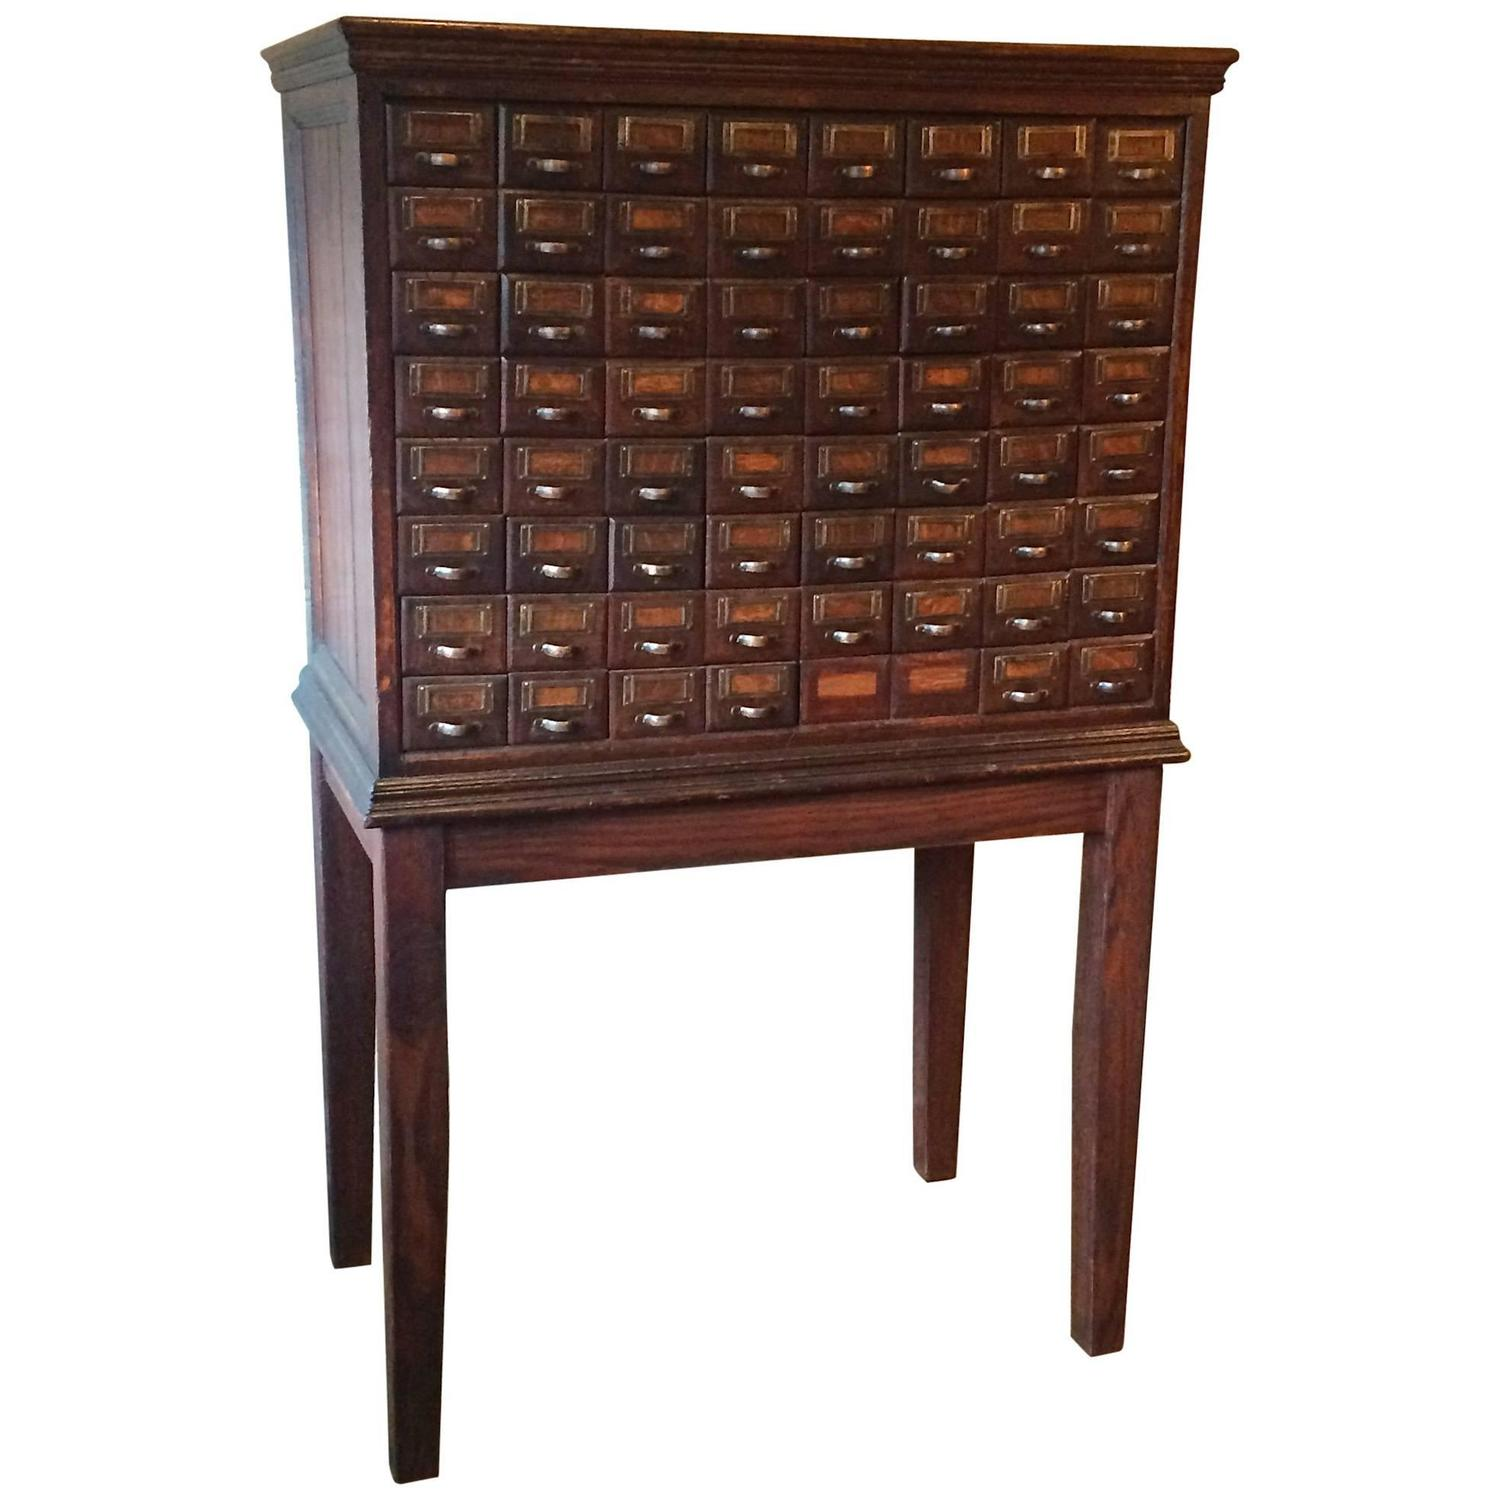 foremost on unit medicine get worthington cheap cabinet bathroom line at oak deals quotations find guides shopping